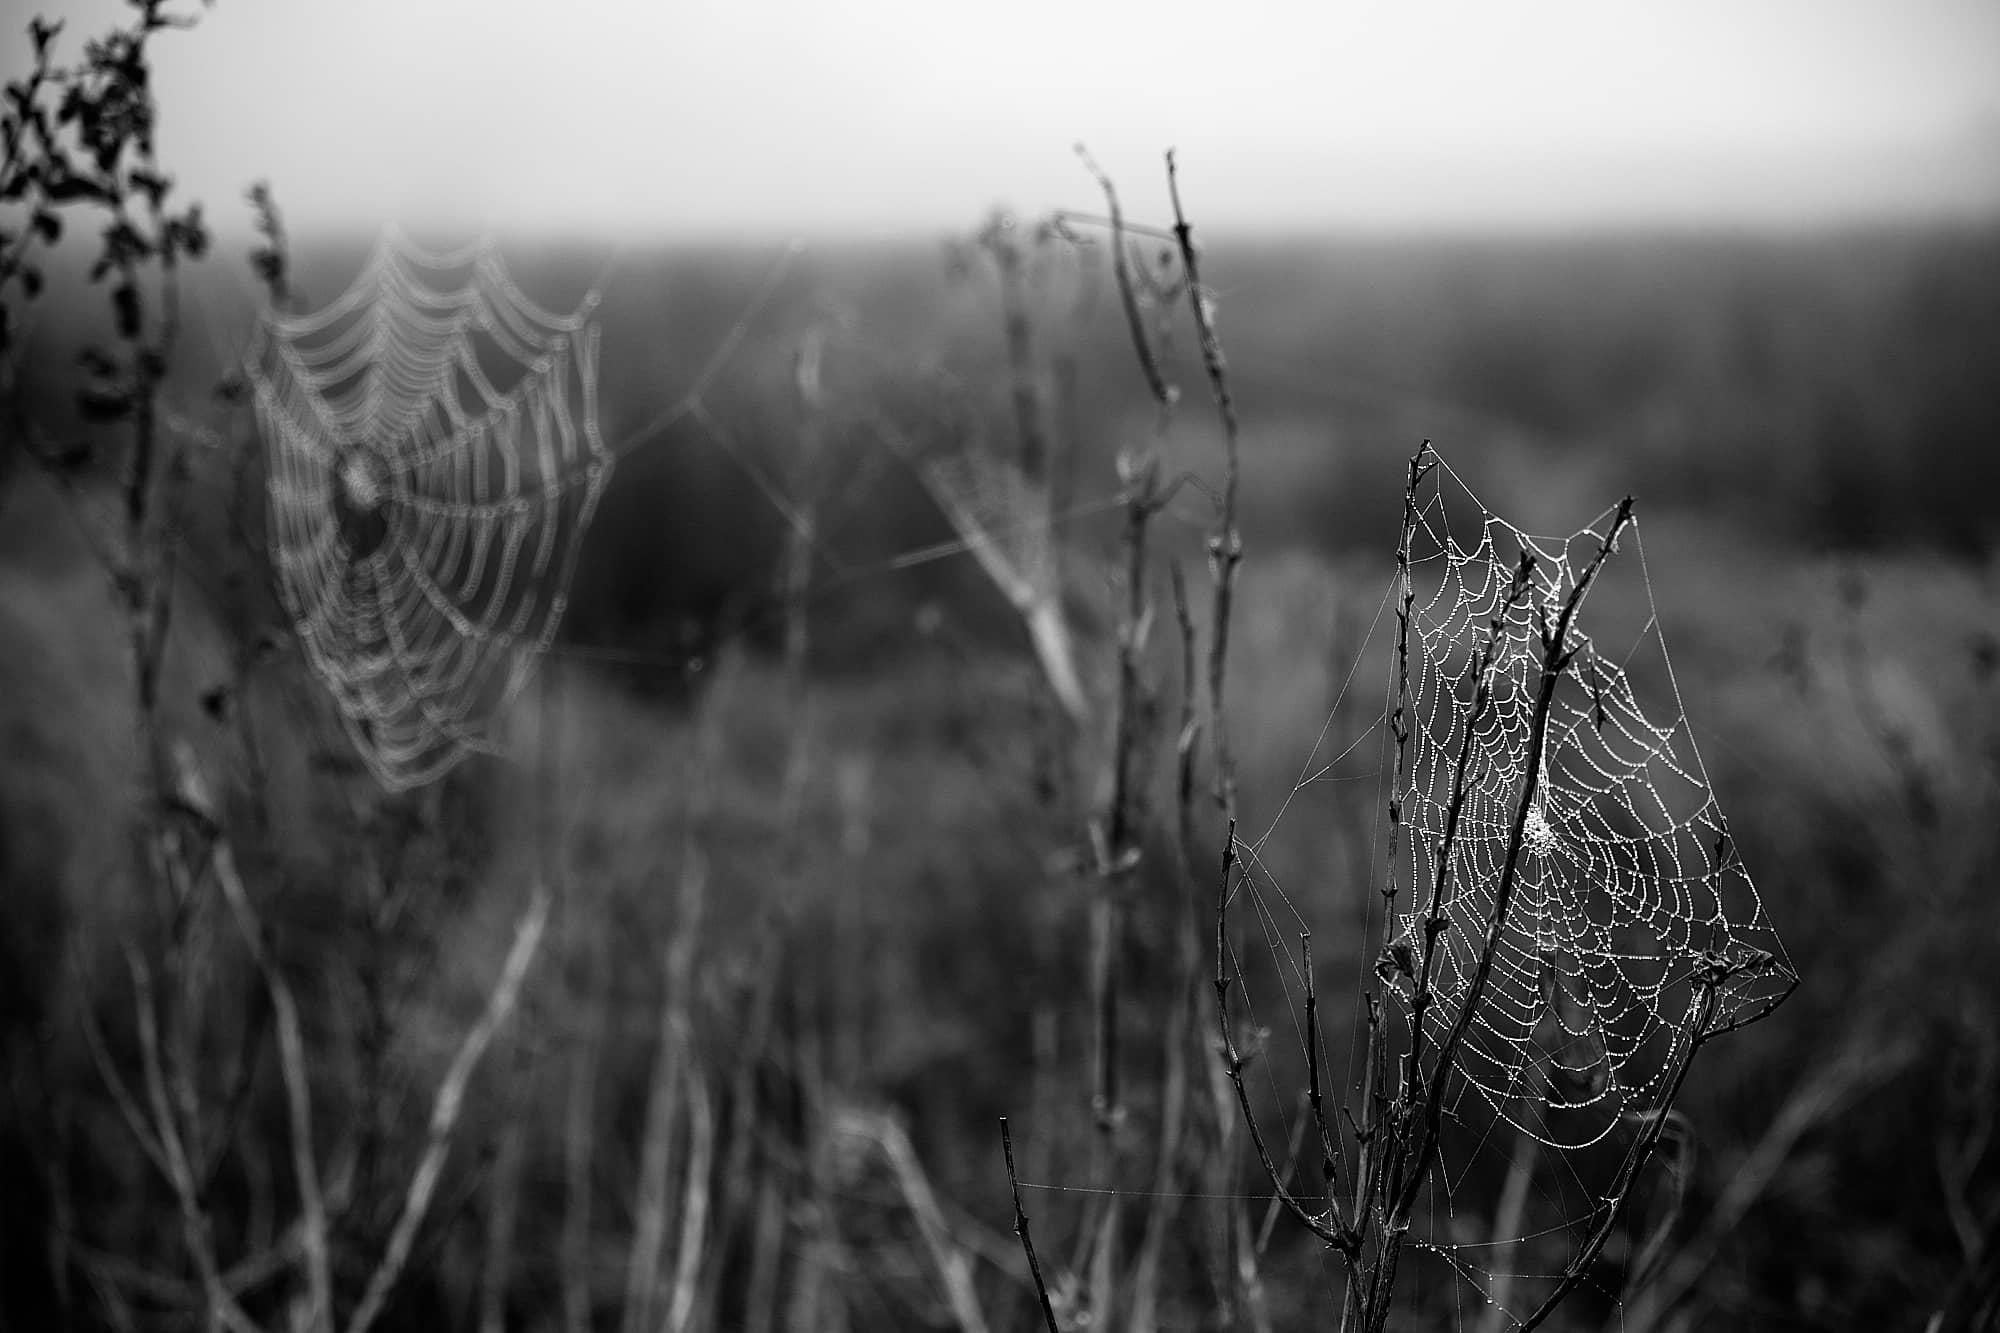 dewy-covered spider webs